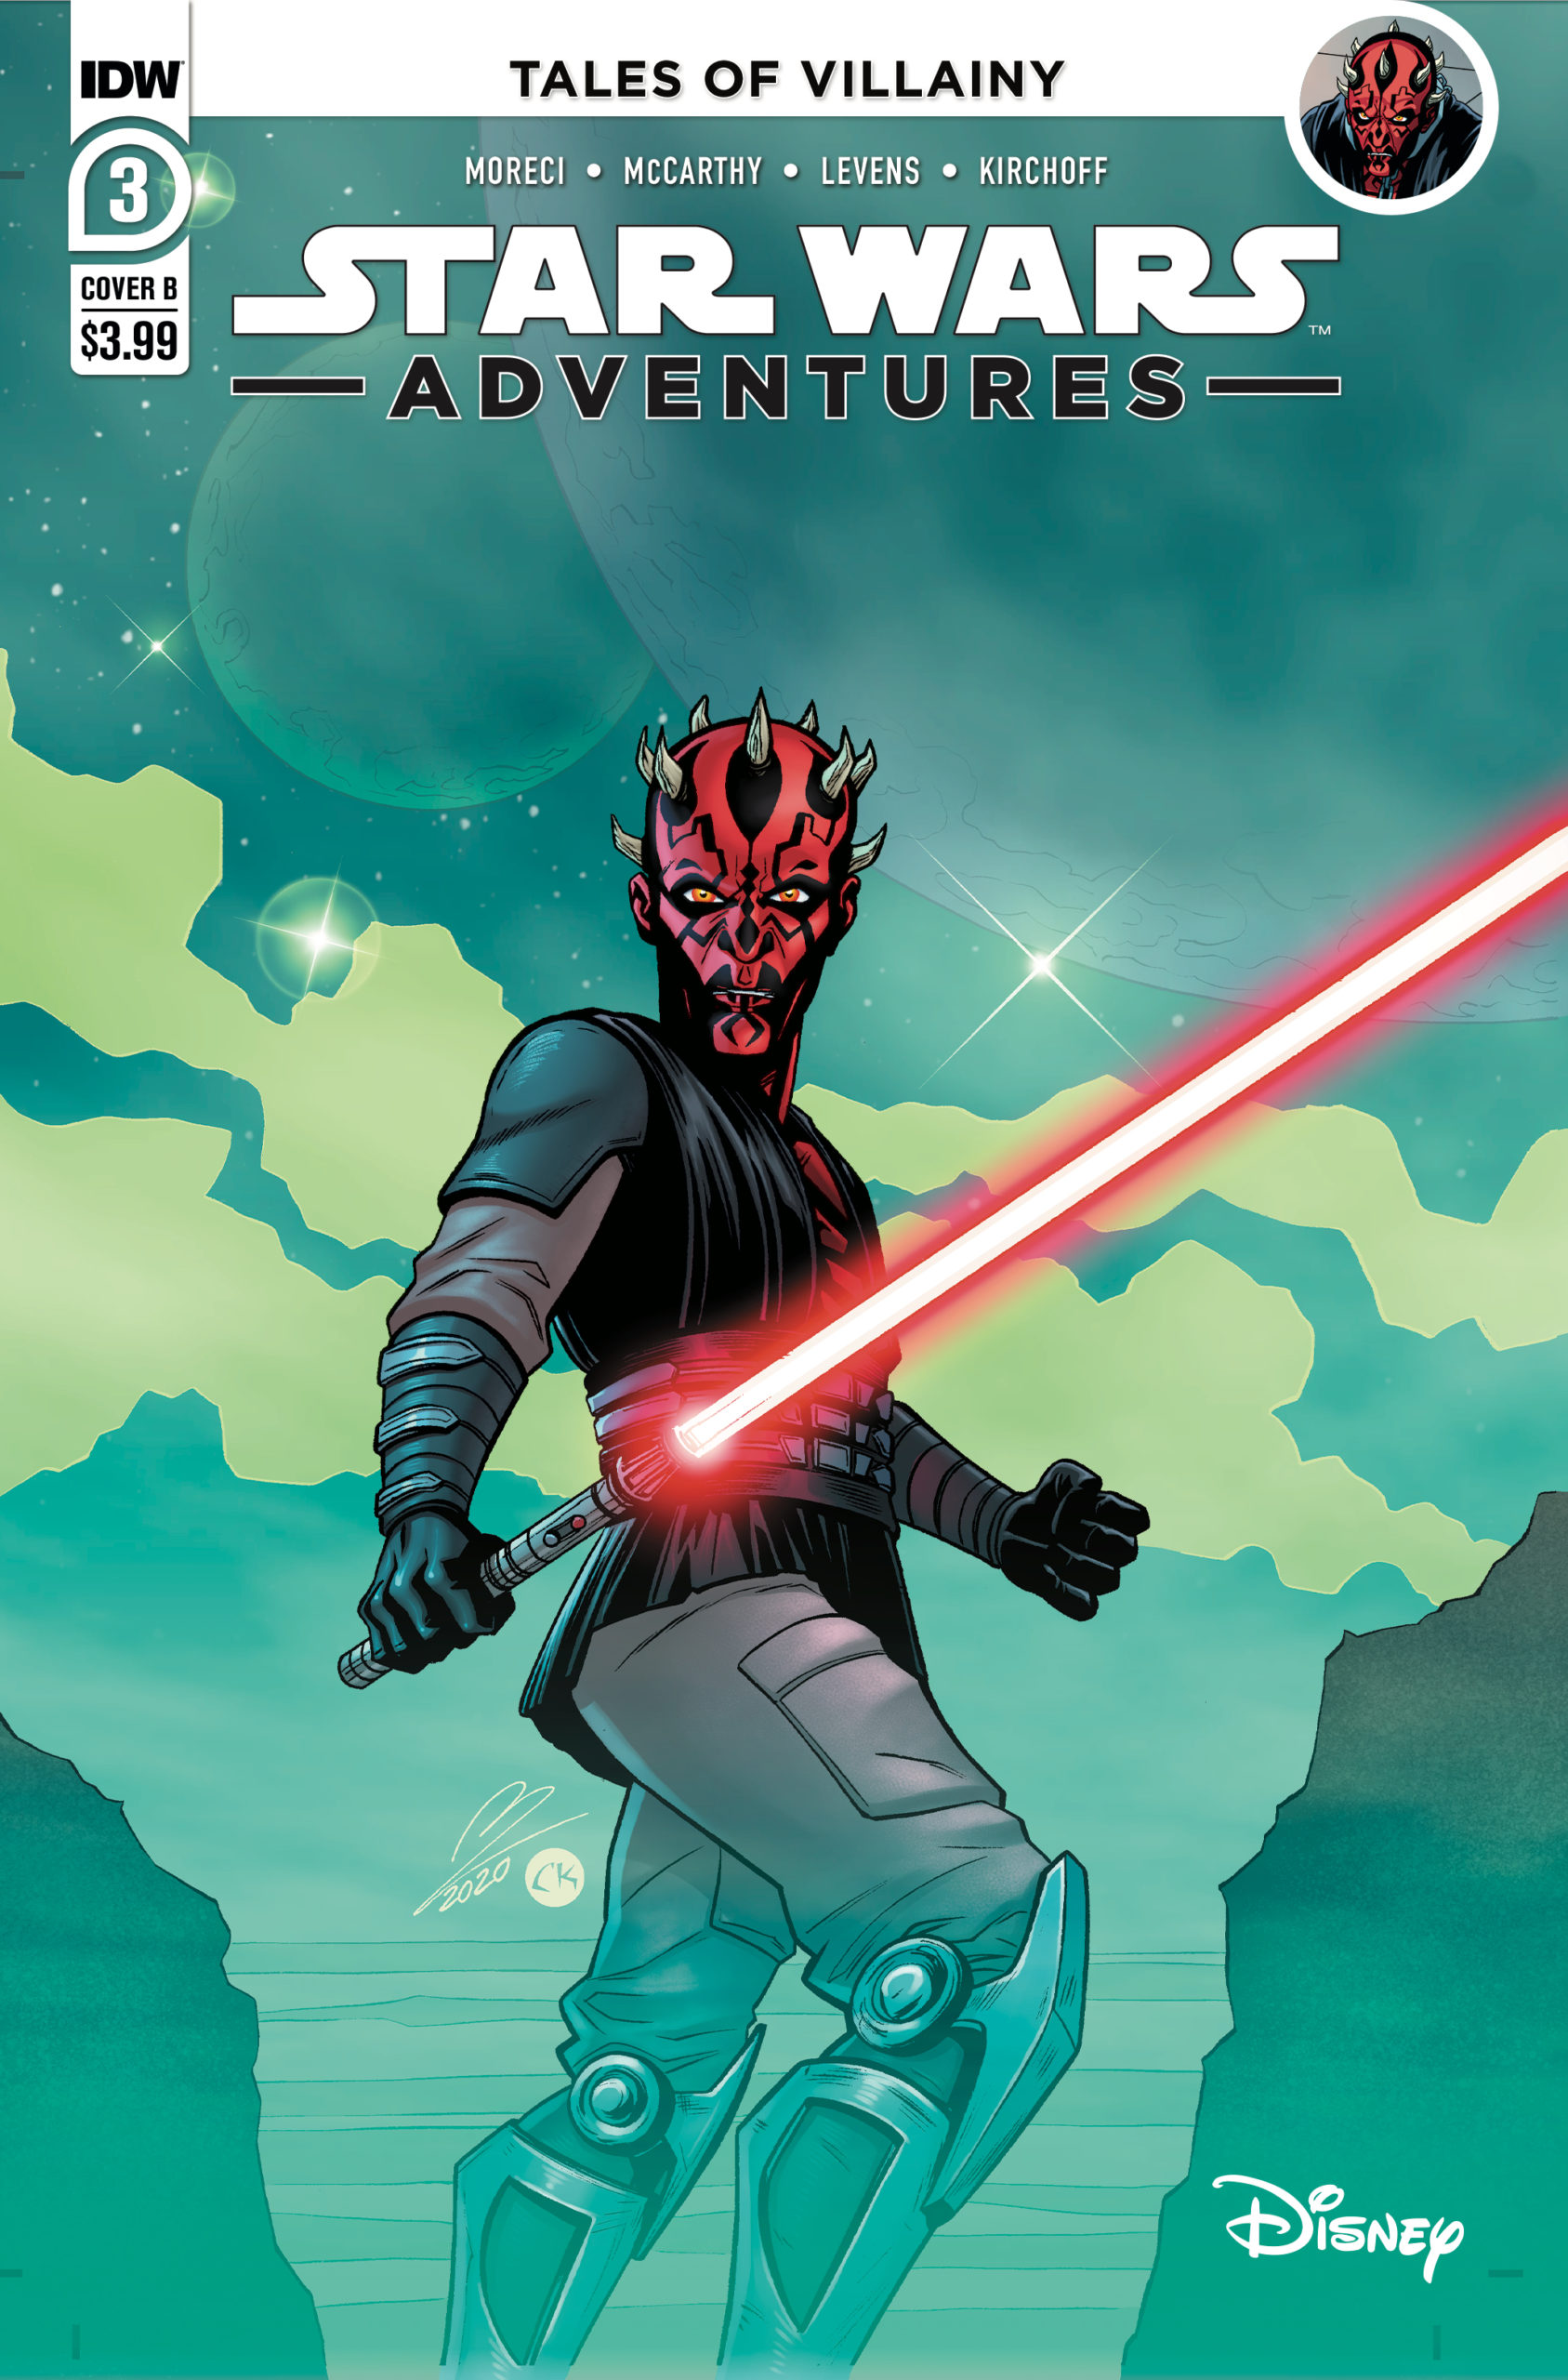 Star Wars Adventures #3 (Cover B by Megan Levens) (30.12.2020)